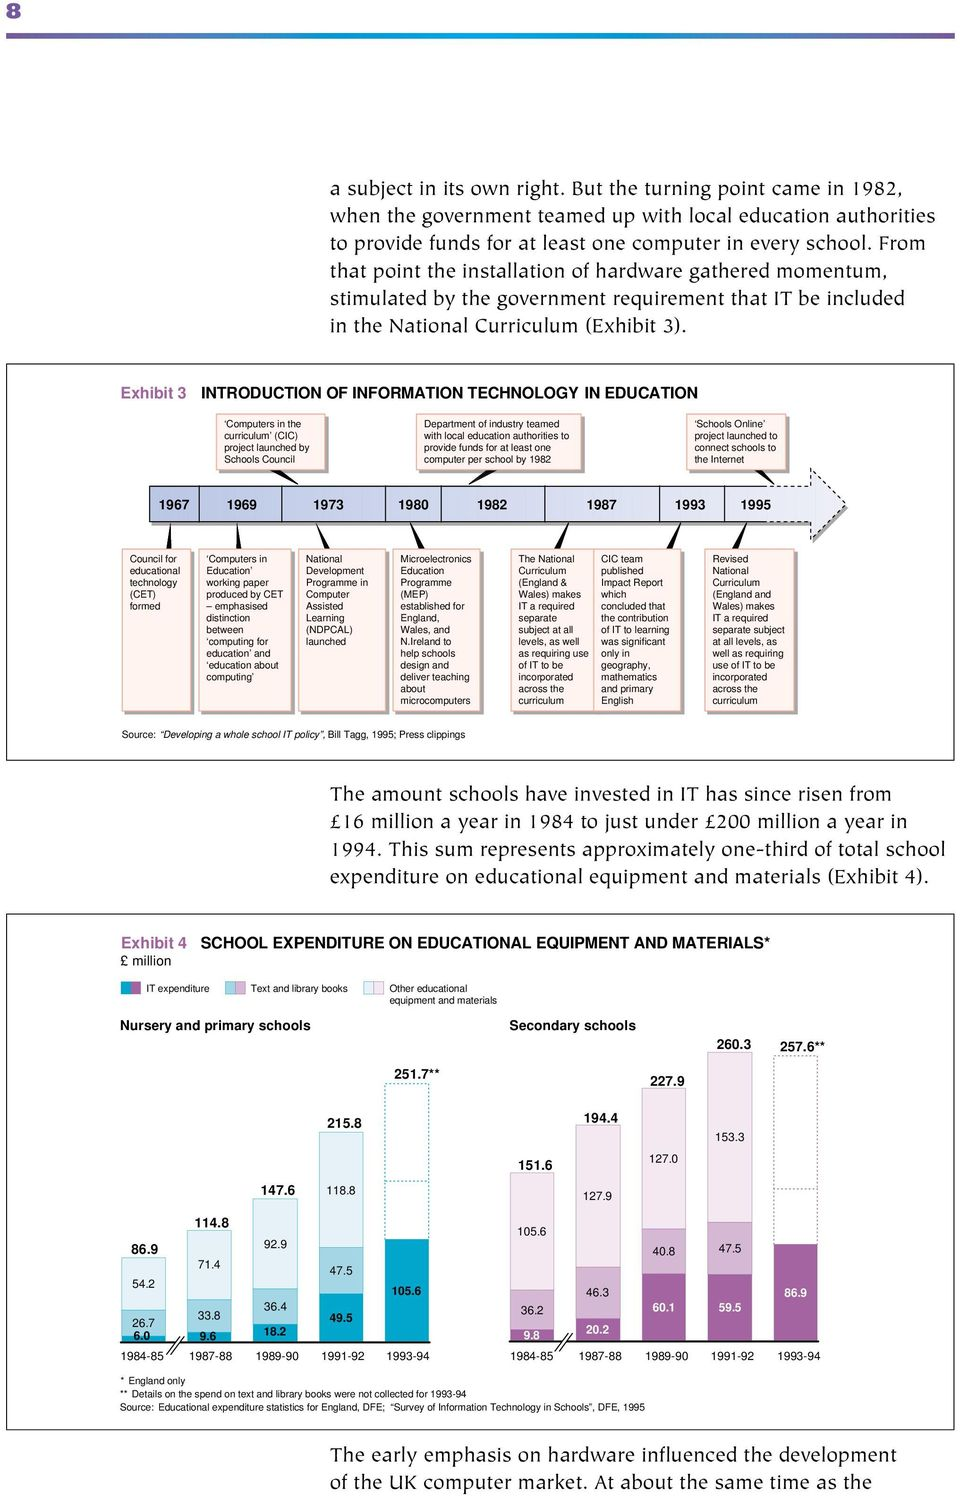 Exhibit 3 INTRODUCTION OF INFORMATION TECHNOLOGY IN EDUCATION Computers in the curriculum (CIC) project launched by Schools Council Department of industry teamed with local education authorities to